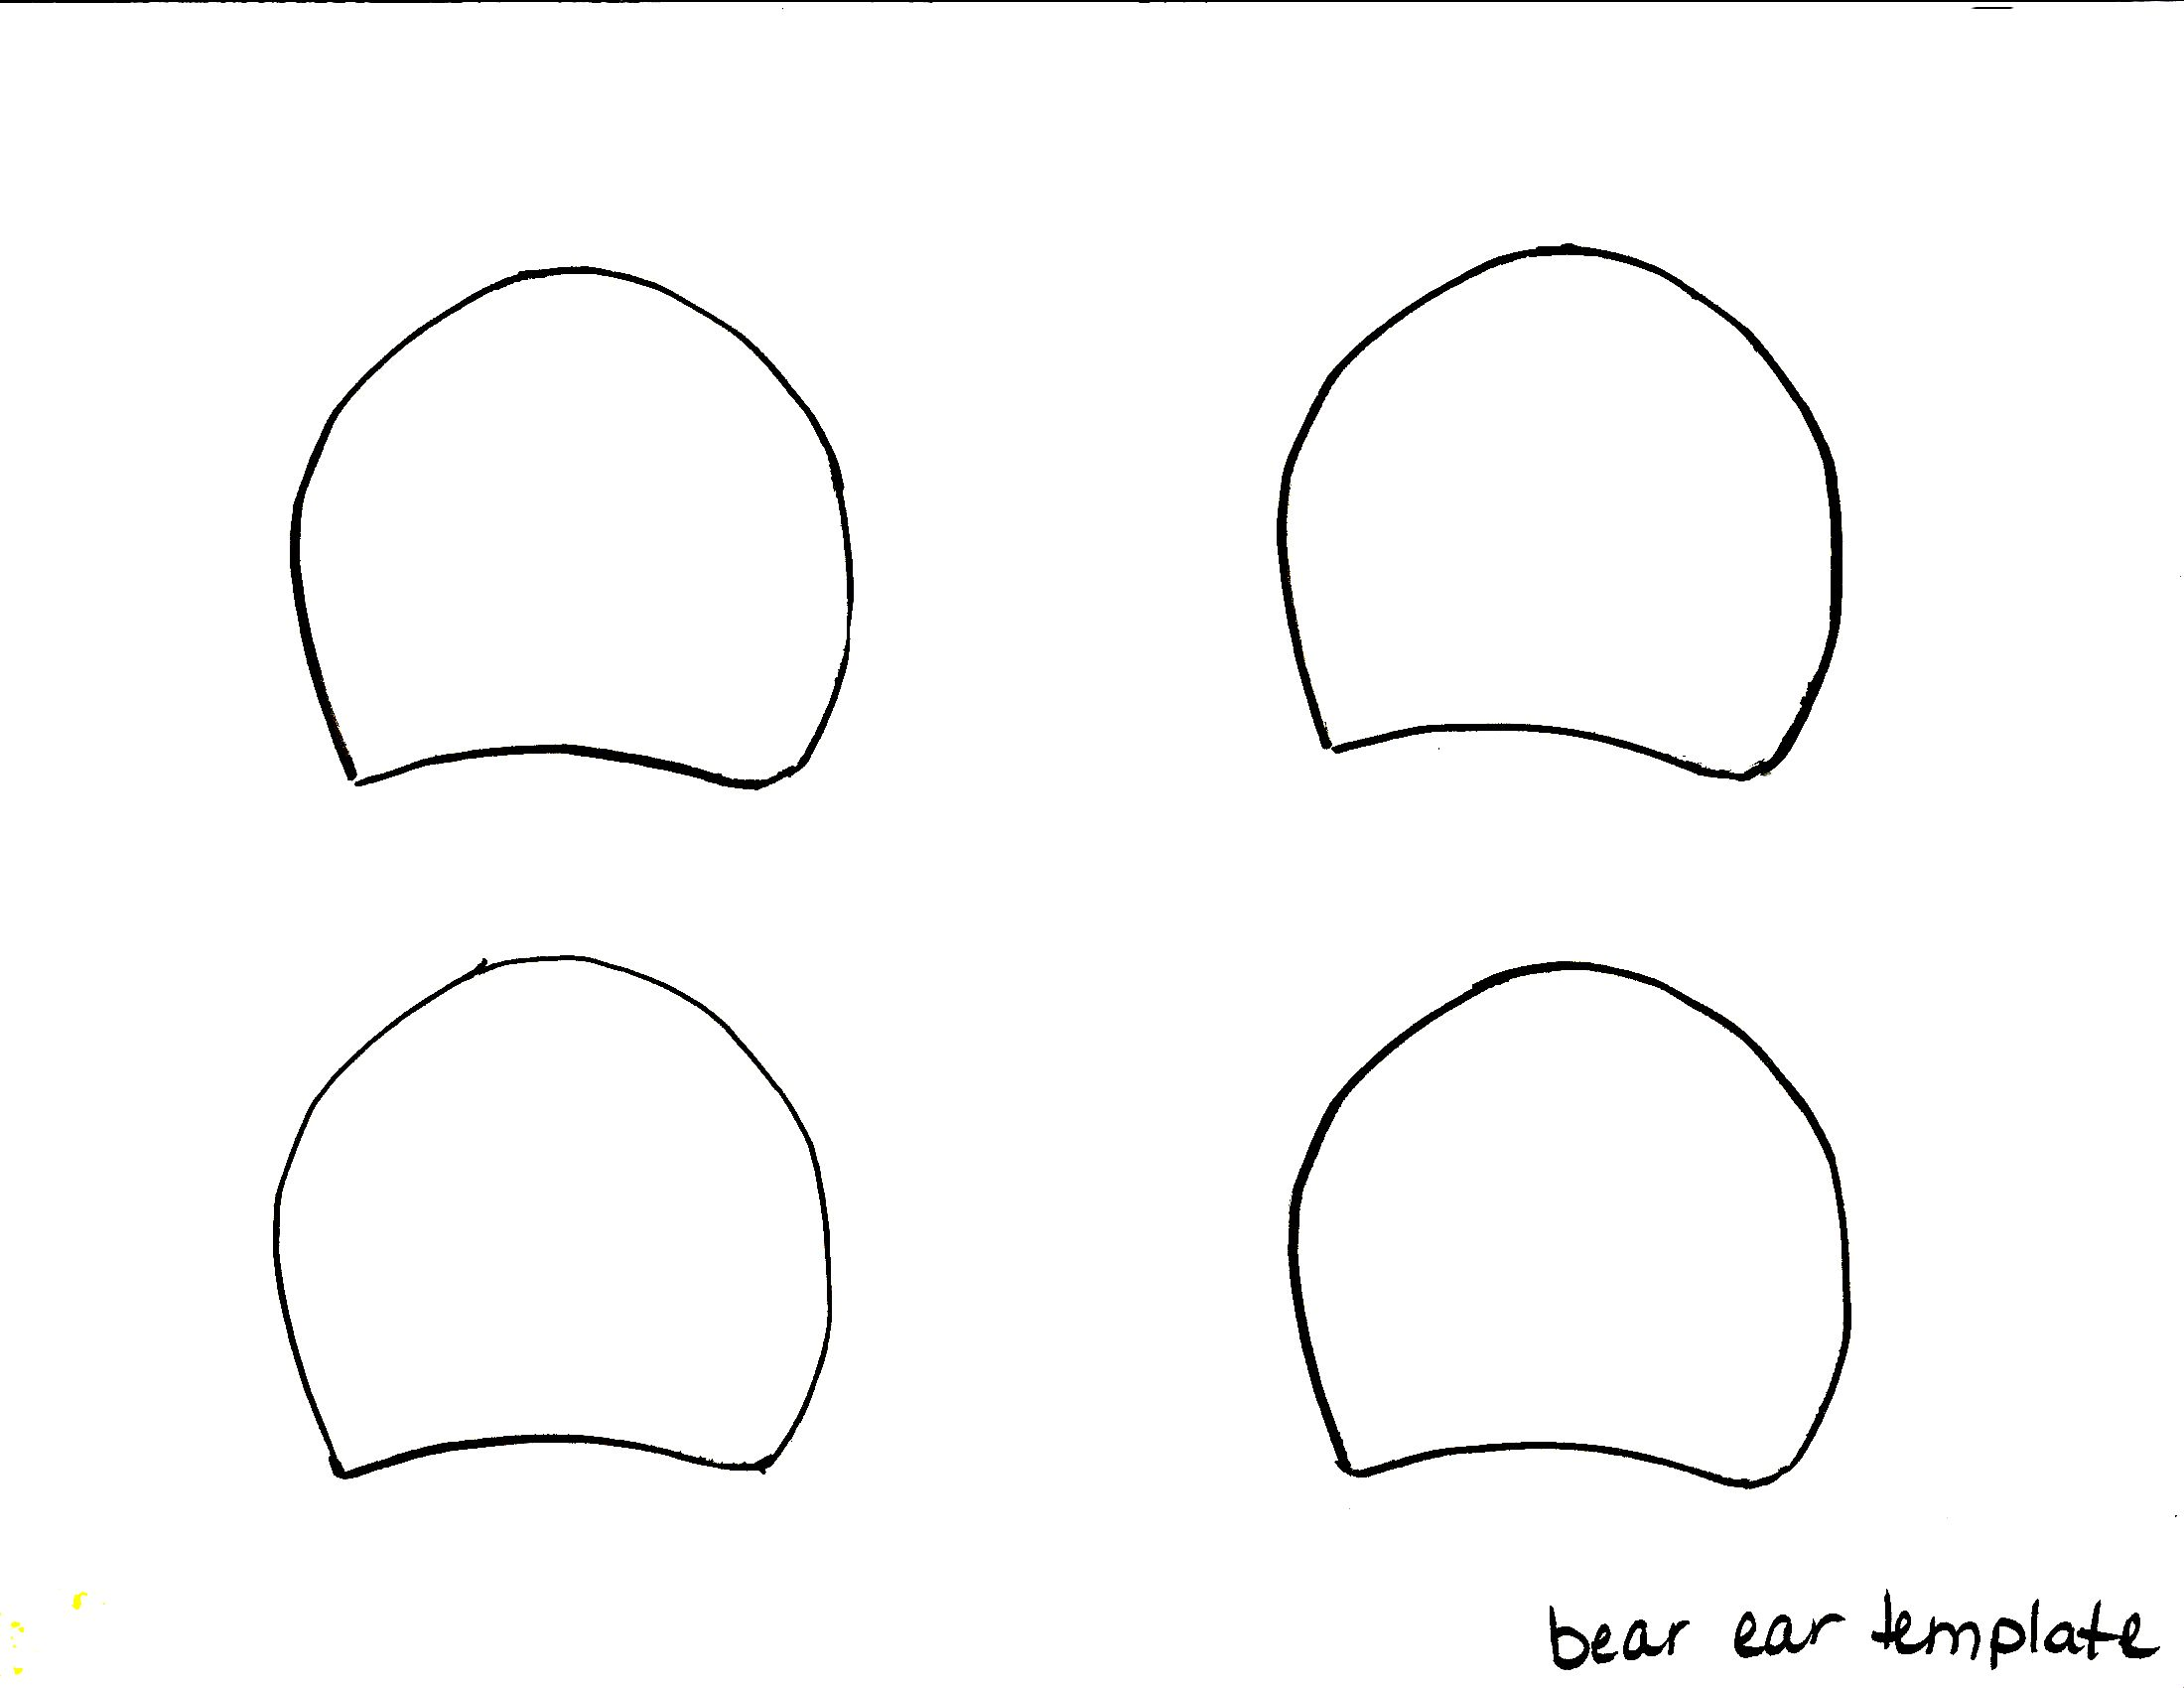 26 Images of Goldilocks Bear Ears Template.